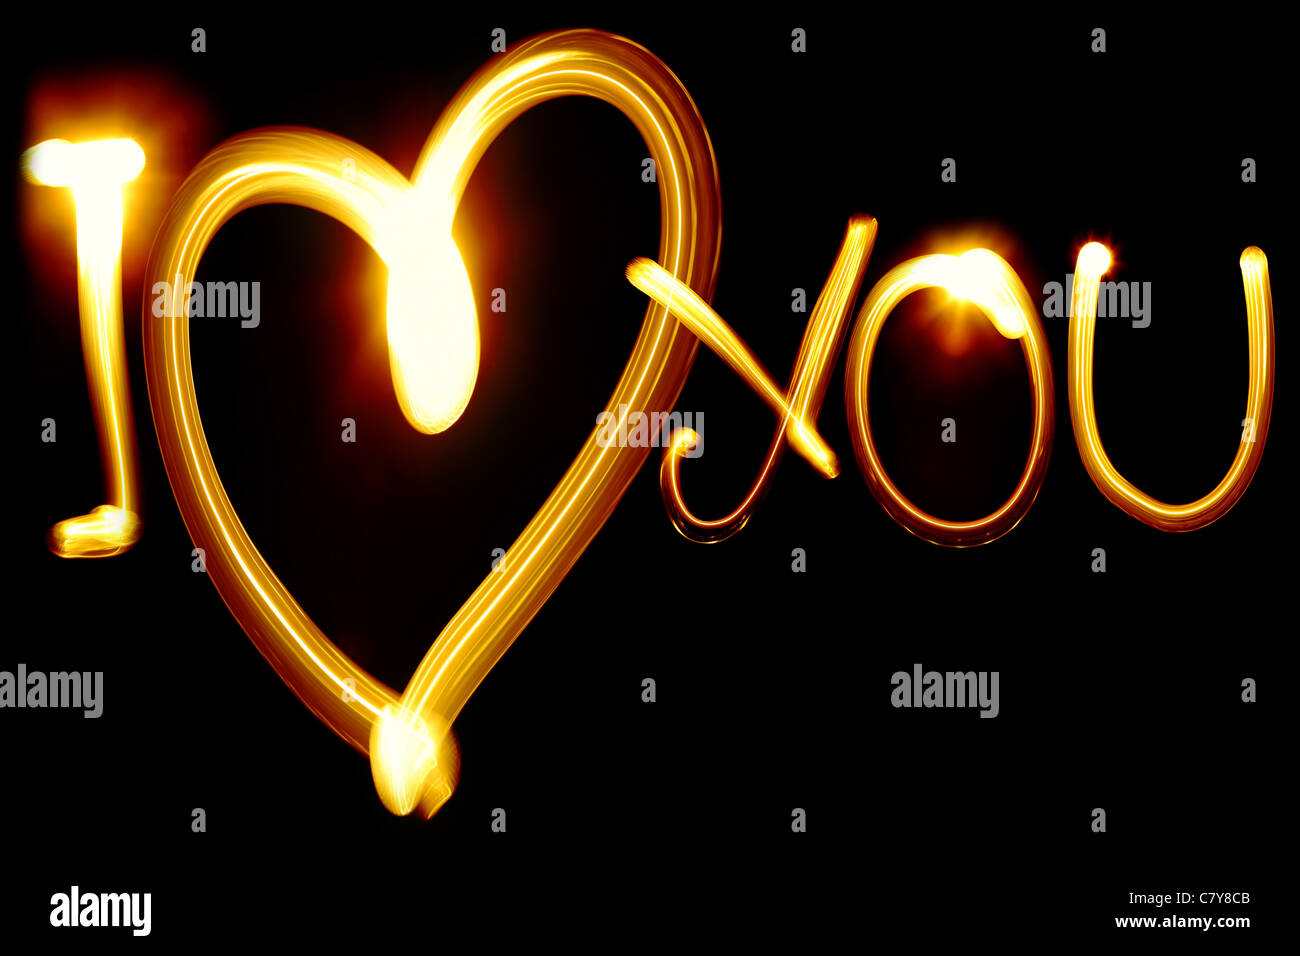 I LOVE YOU phrase created by light over black background - Stock Image